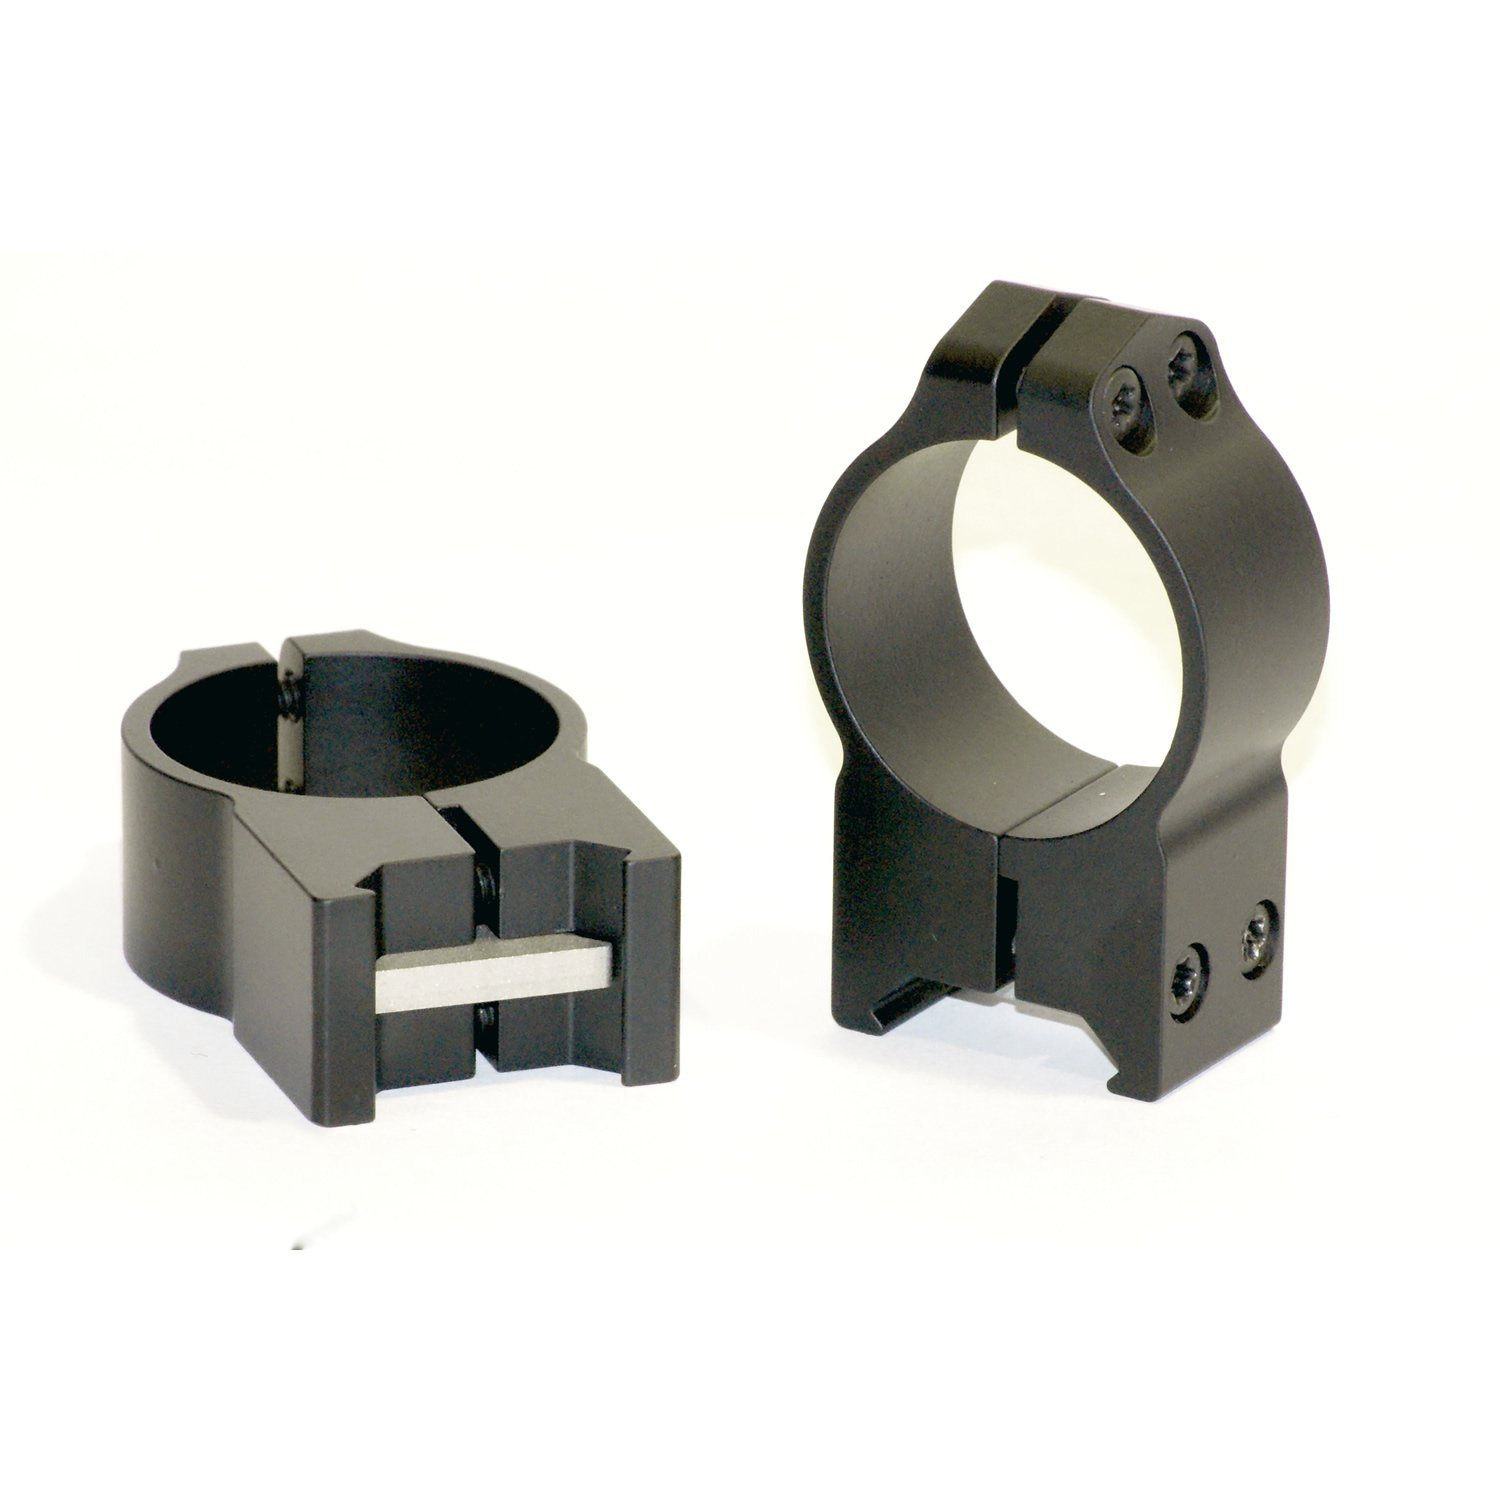 Warnex 40mm Mounts 215M Warnex 40mm Mounts, Maxima Permanent Attachable Weaver Style Rings, 30mm, High Height, Matte Black by Warne Scope Mounts